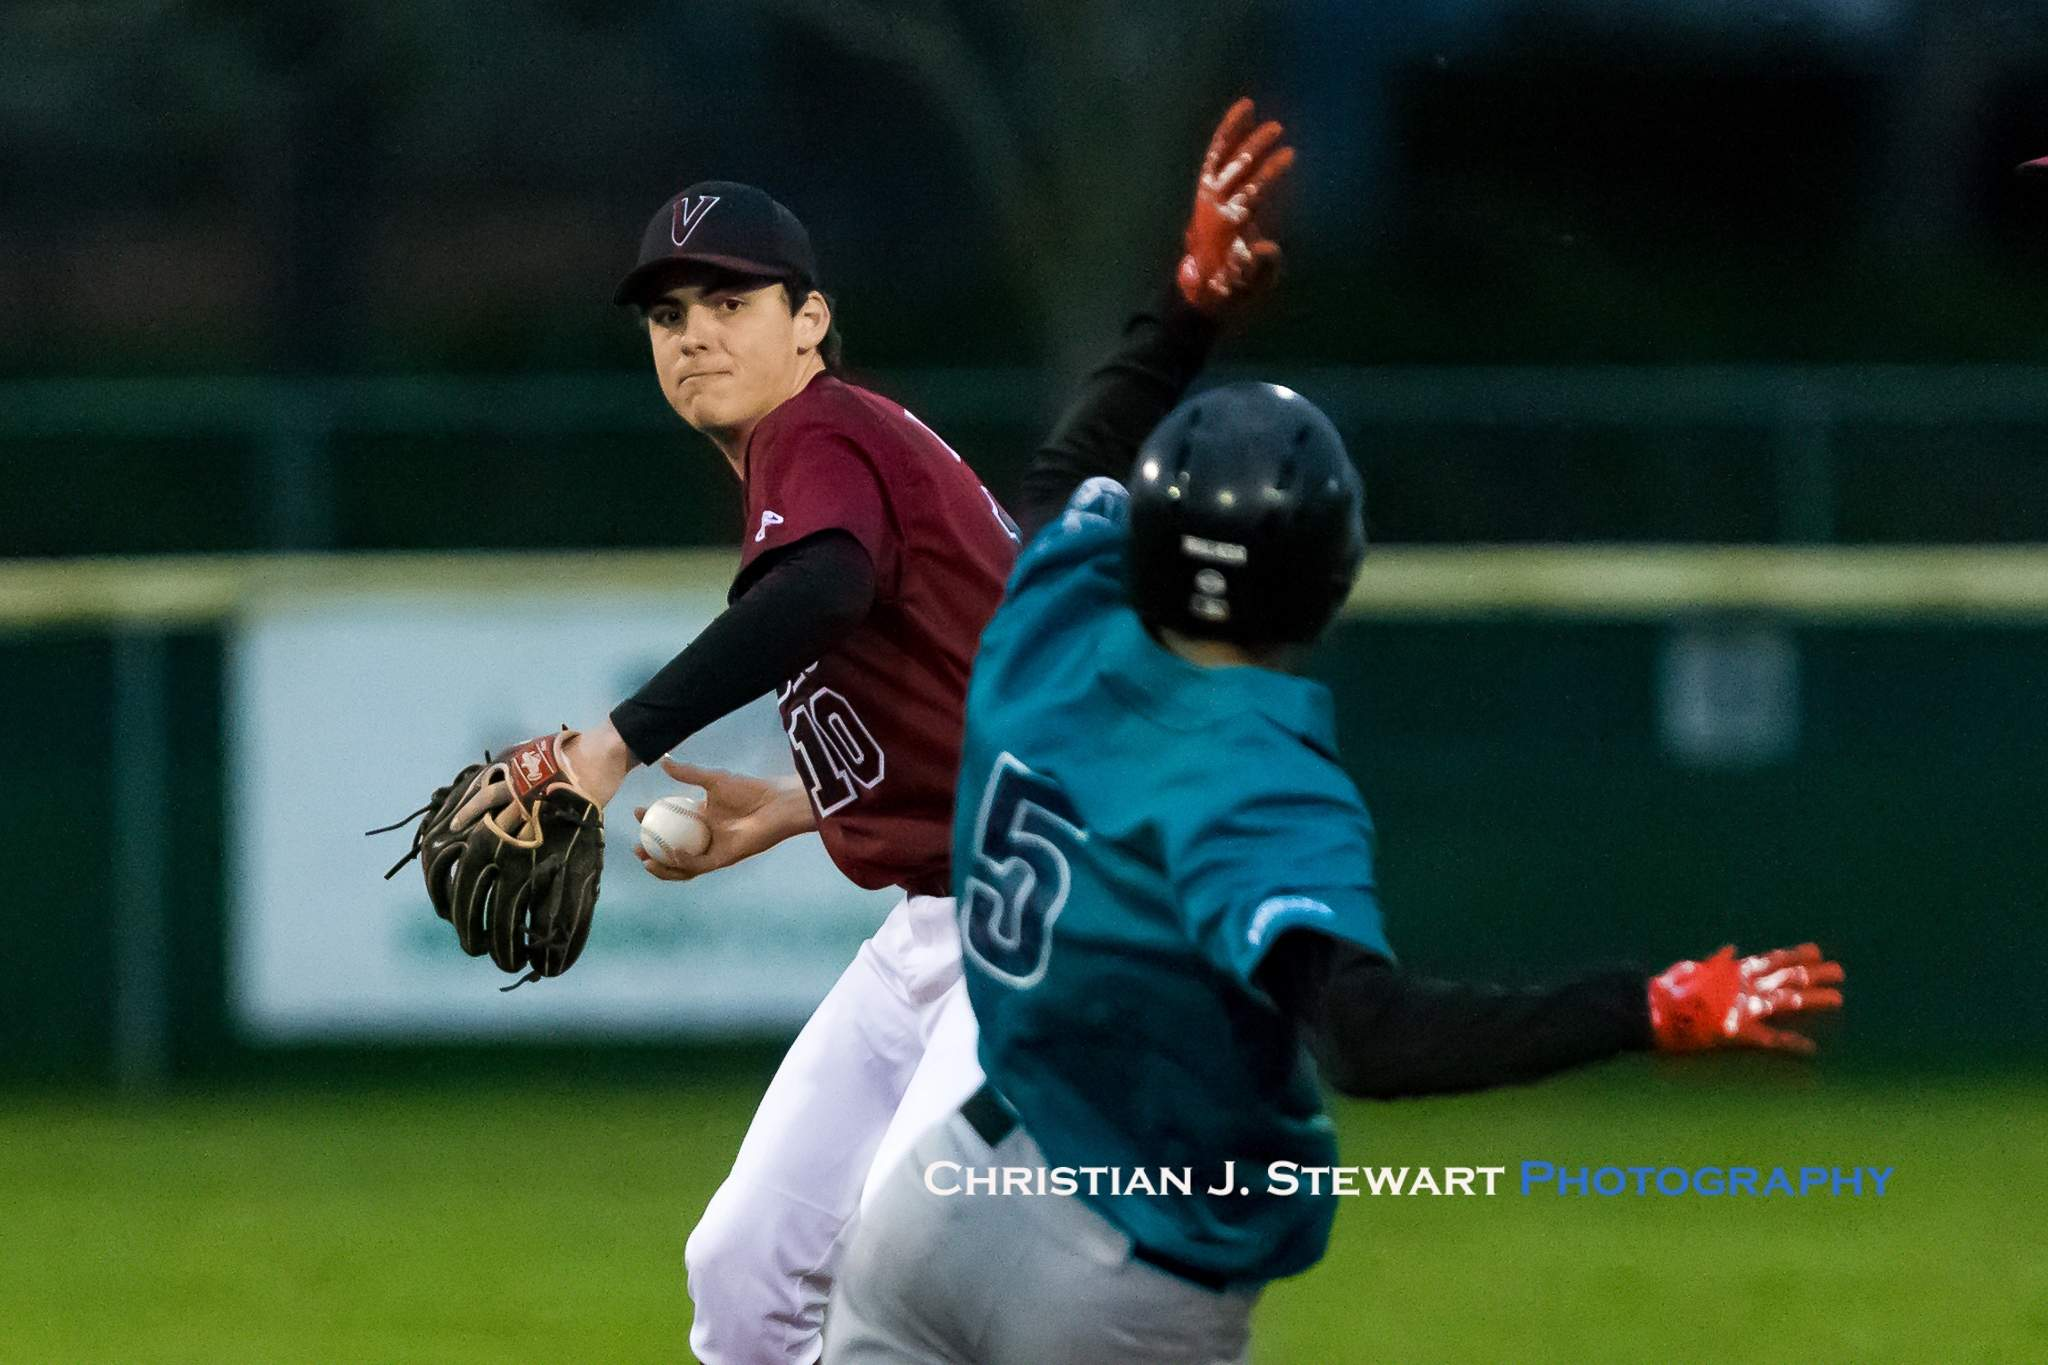 Victoria Eagles shortstop Jordon Bond prepares to throw to first while attempting a double play against the Mariners on Tuesday (Photo: Christian J. Stewart)